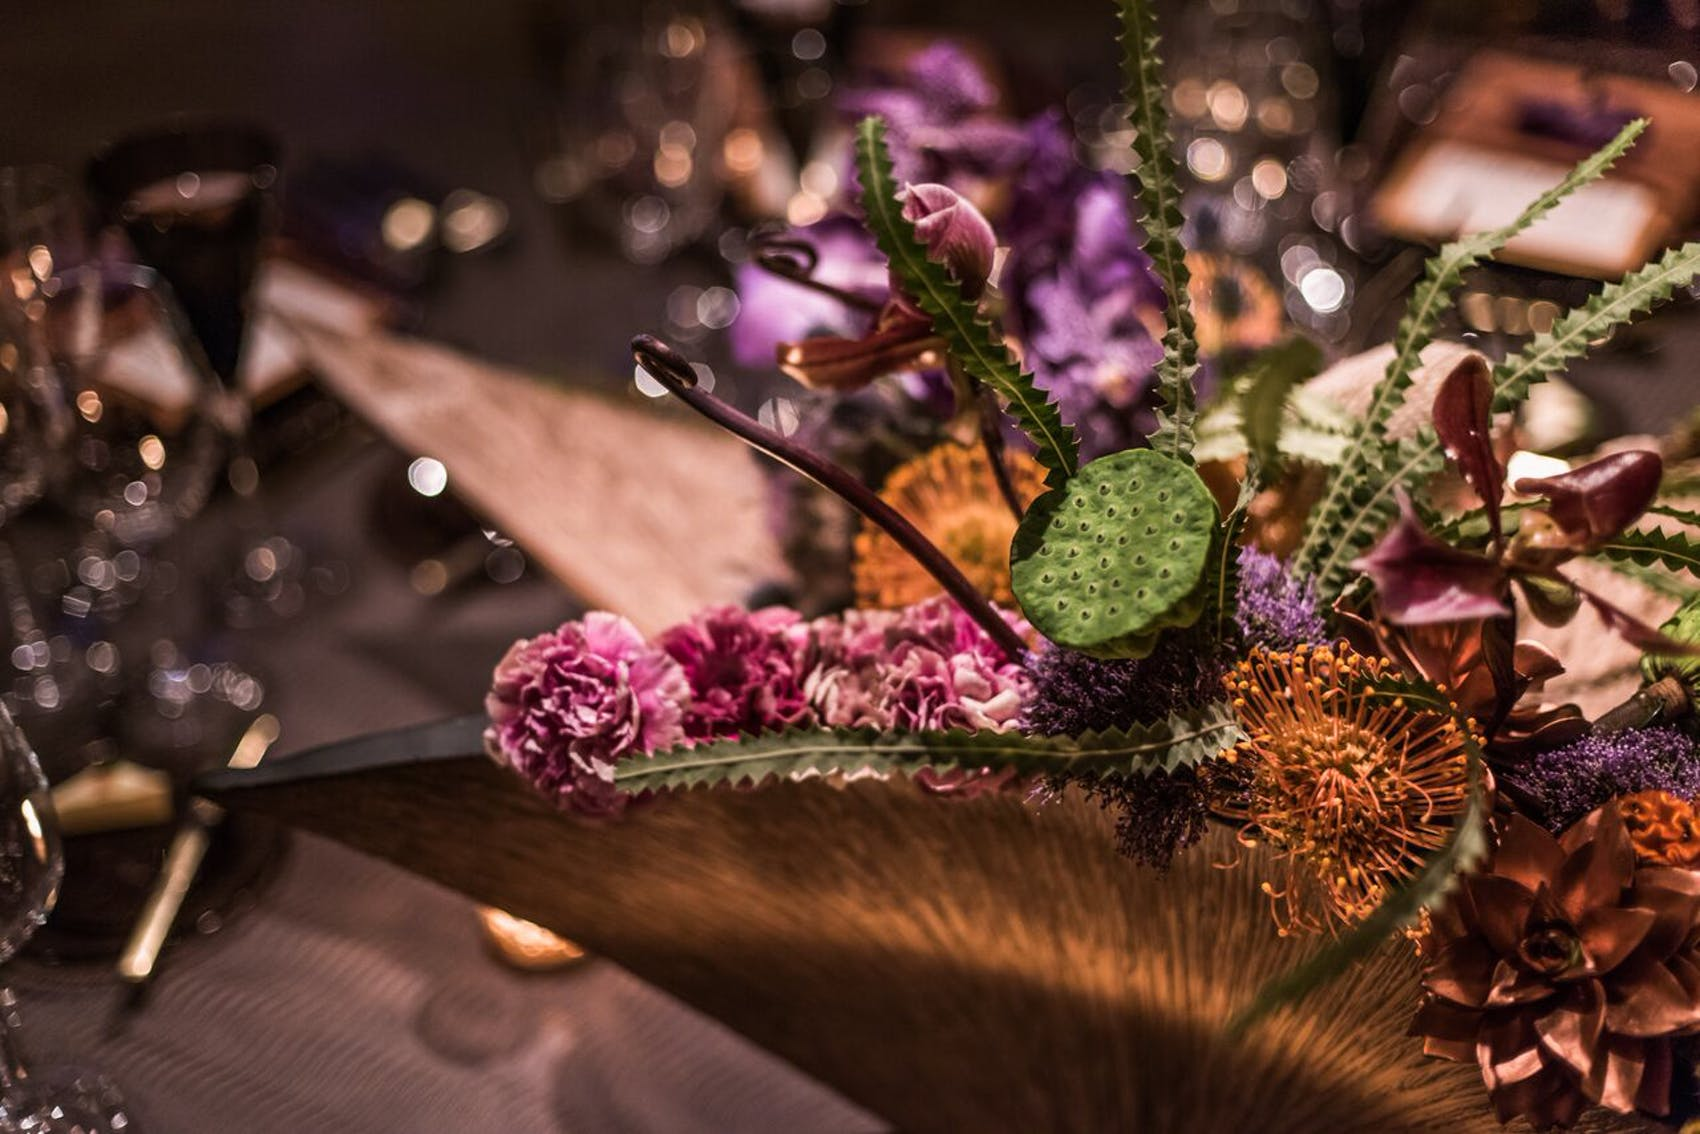 japanese ikebana style florals on party tabletop